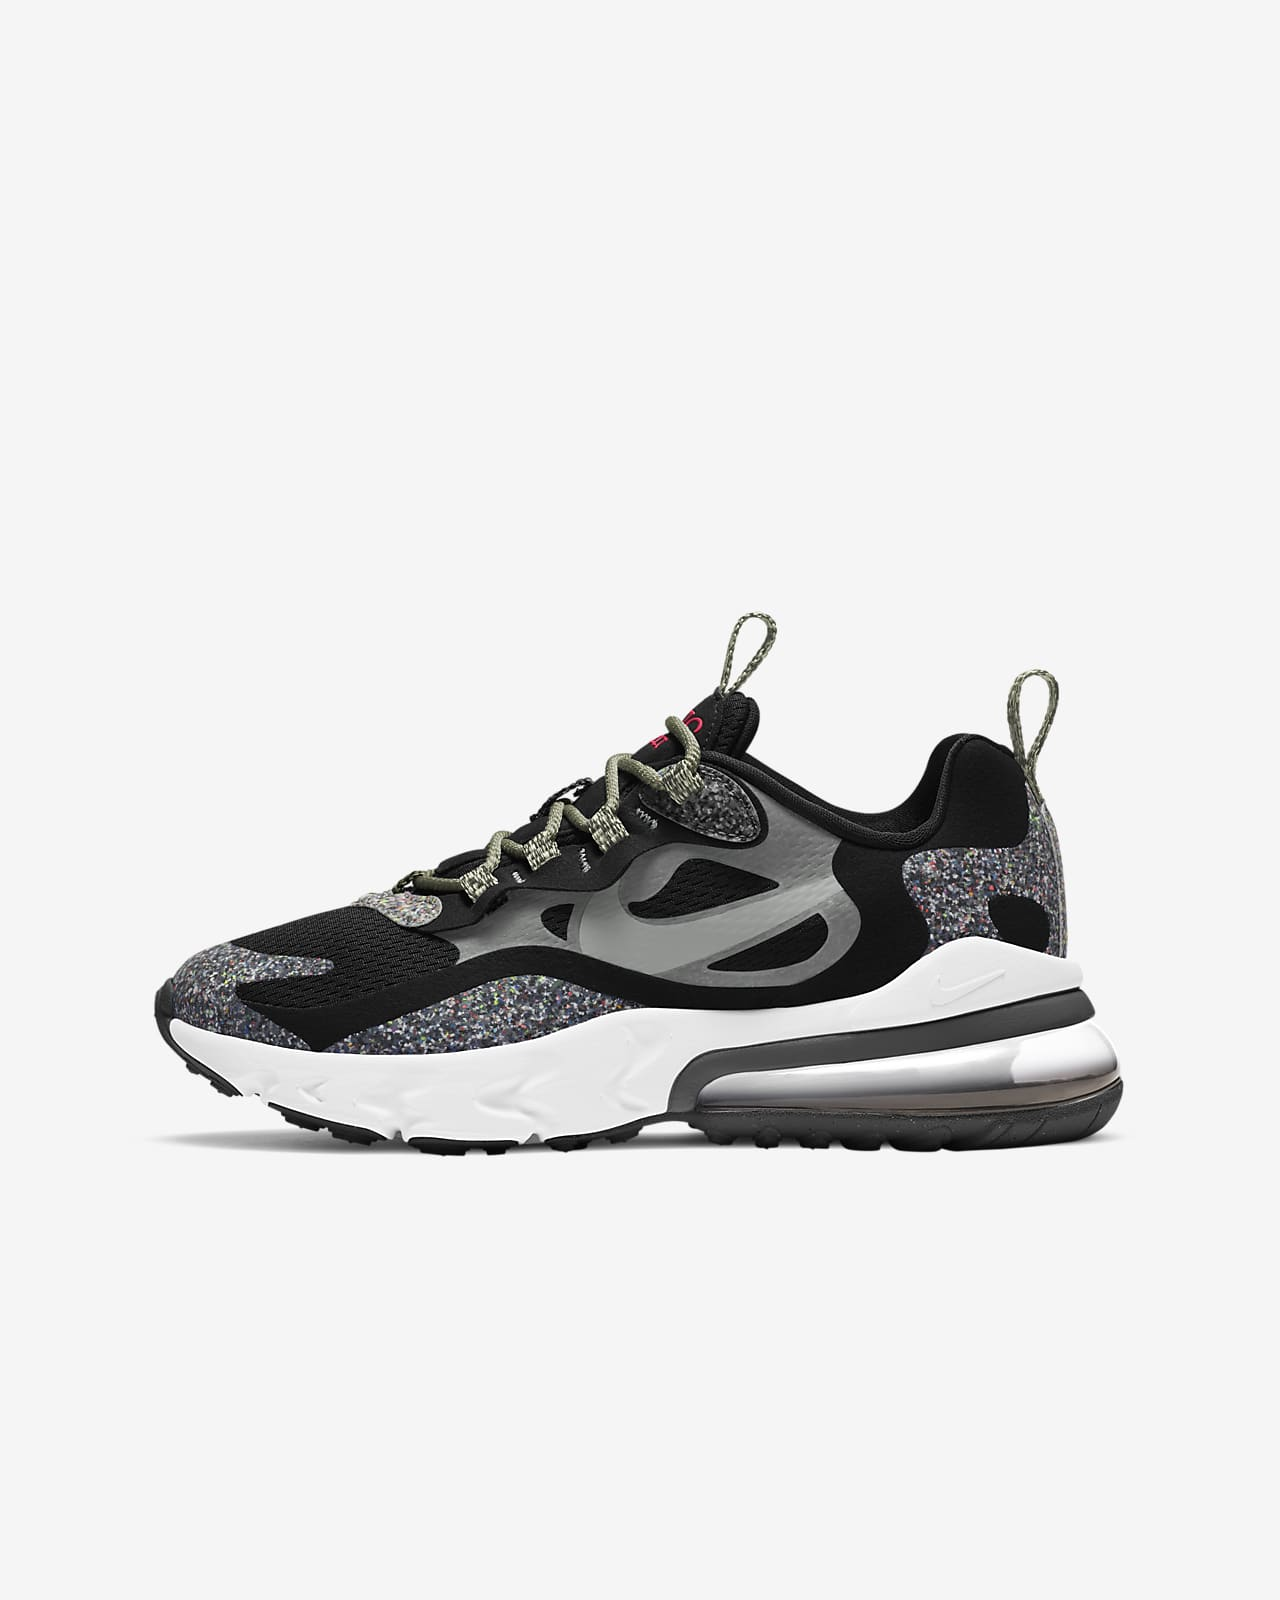 Nike Air Max 270 React SE Zapatillas - Niño/a